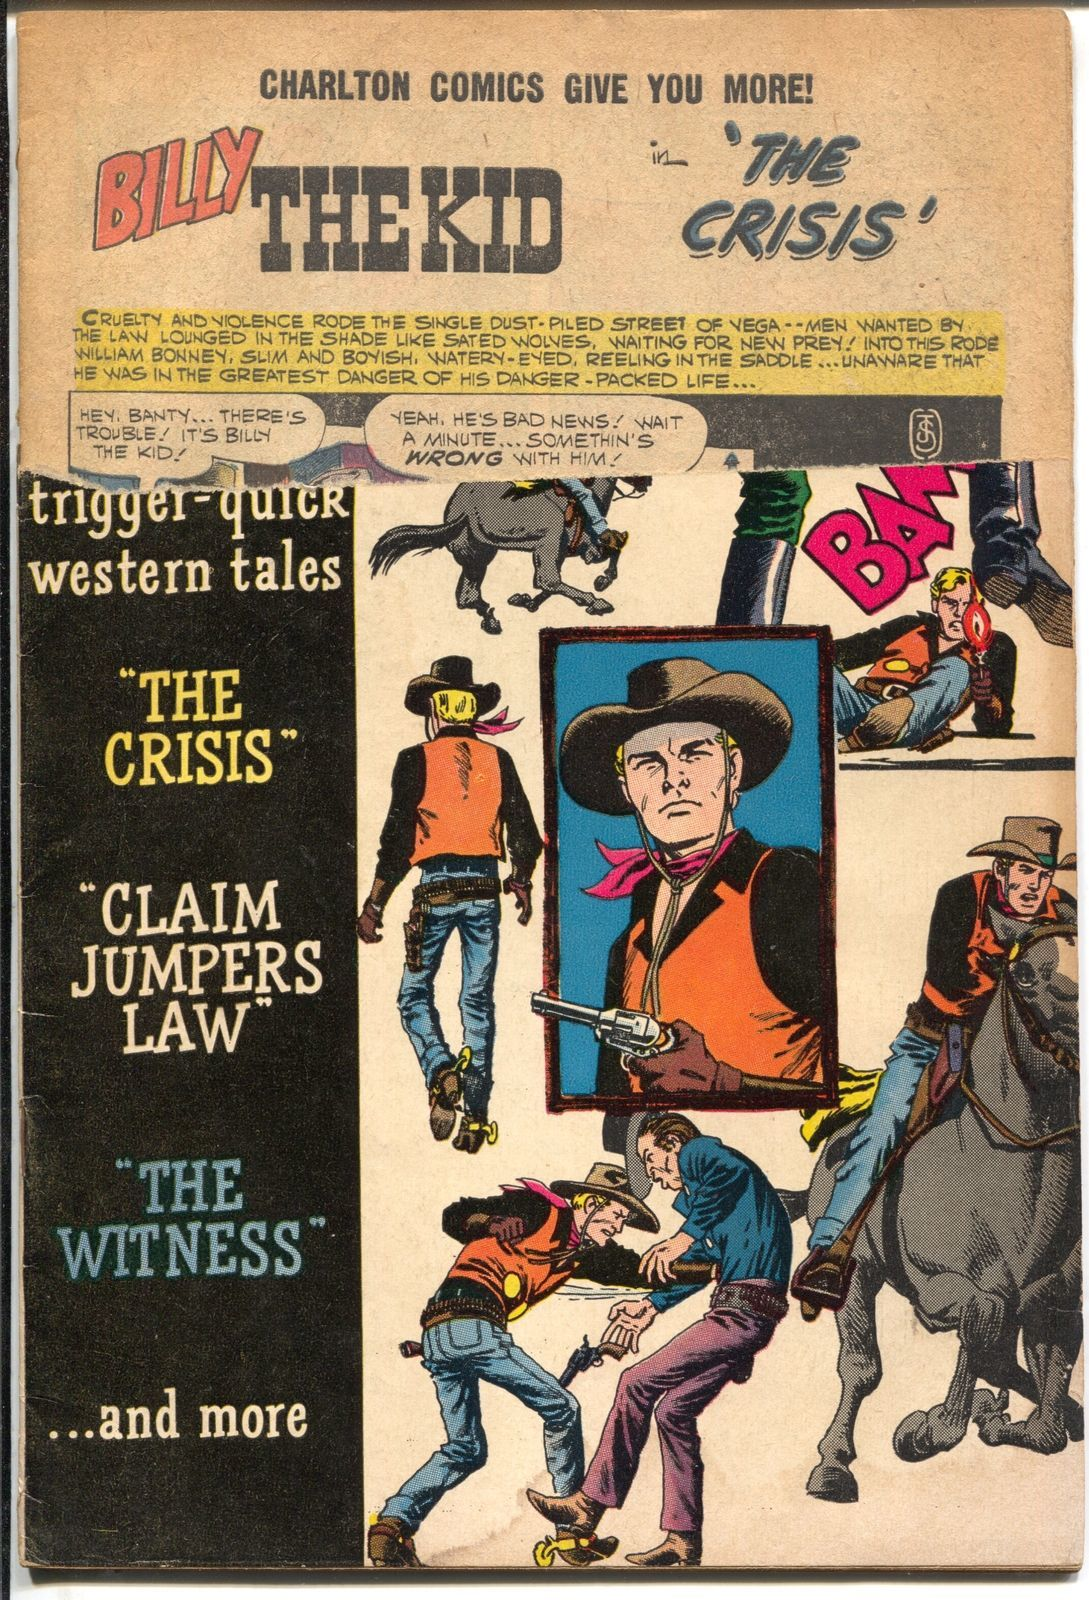 Billy The Kid #22 1960-Charlton-John Severin-Rocky Lane-P